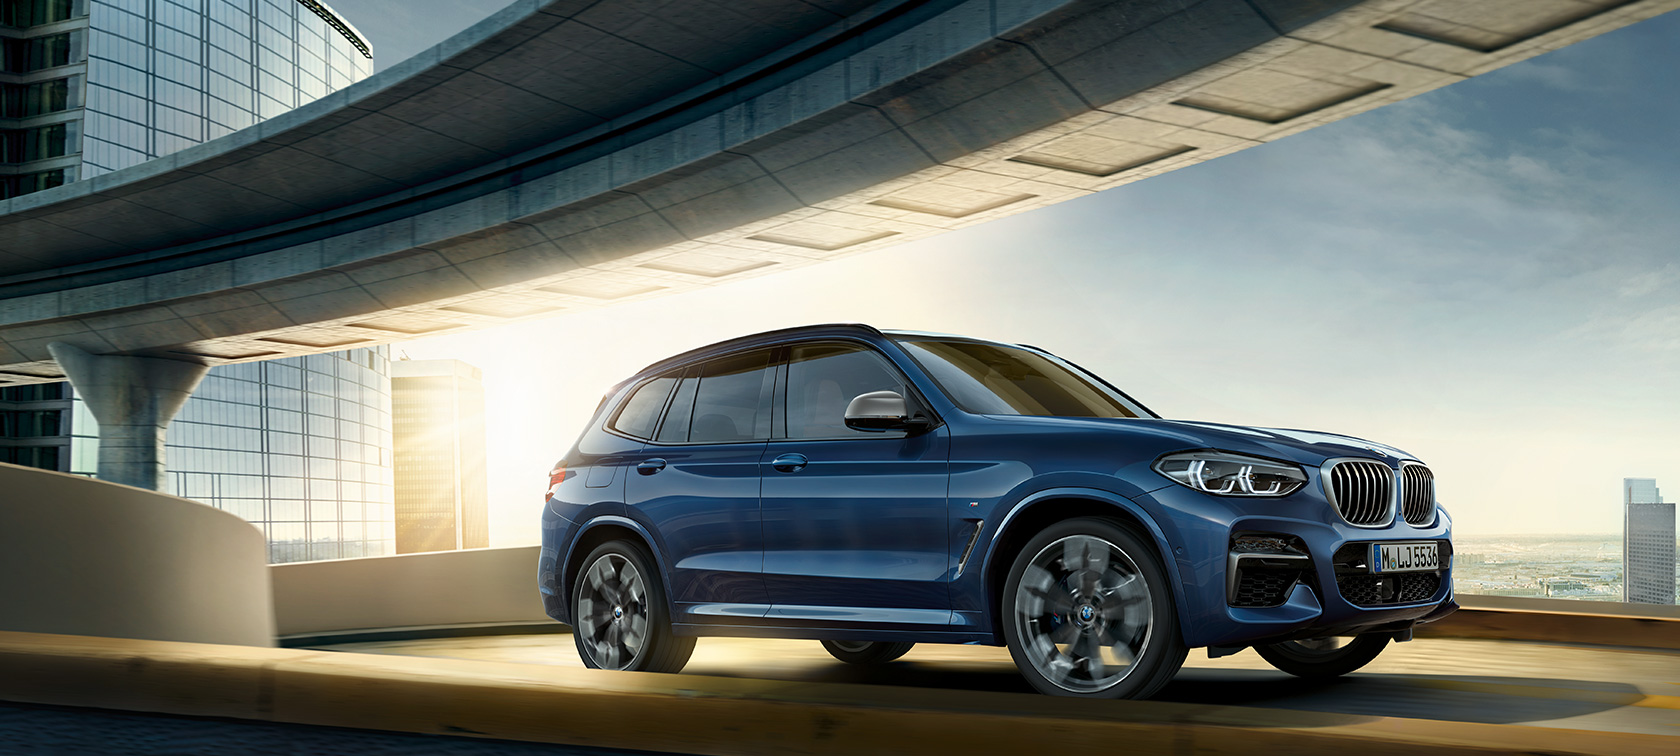 BMW X3, technical data